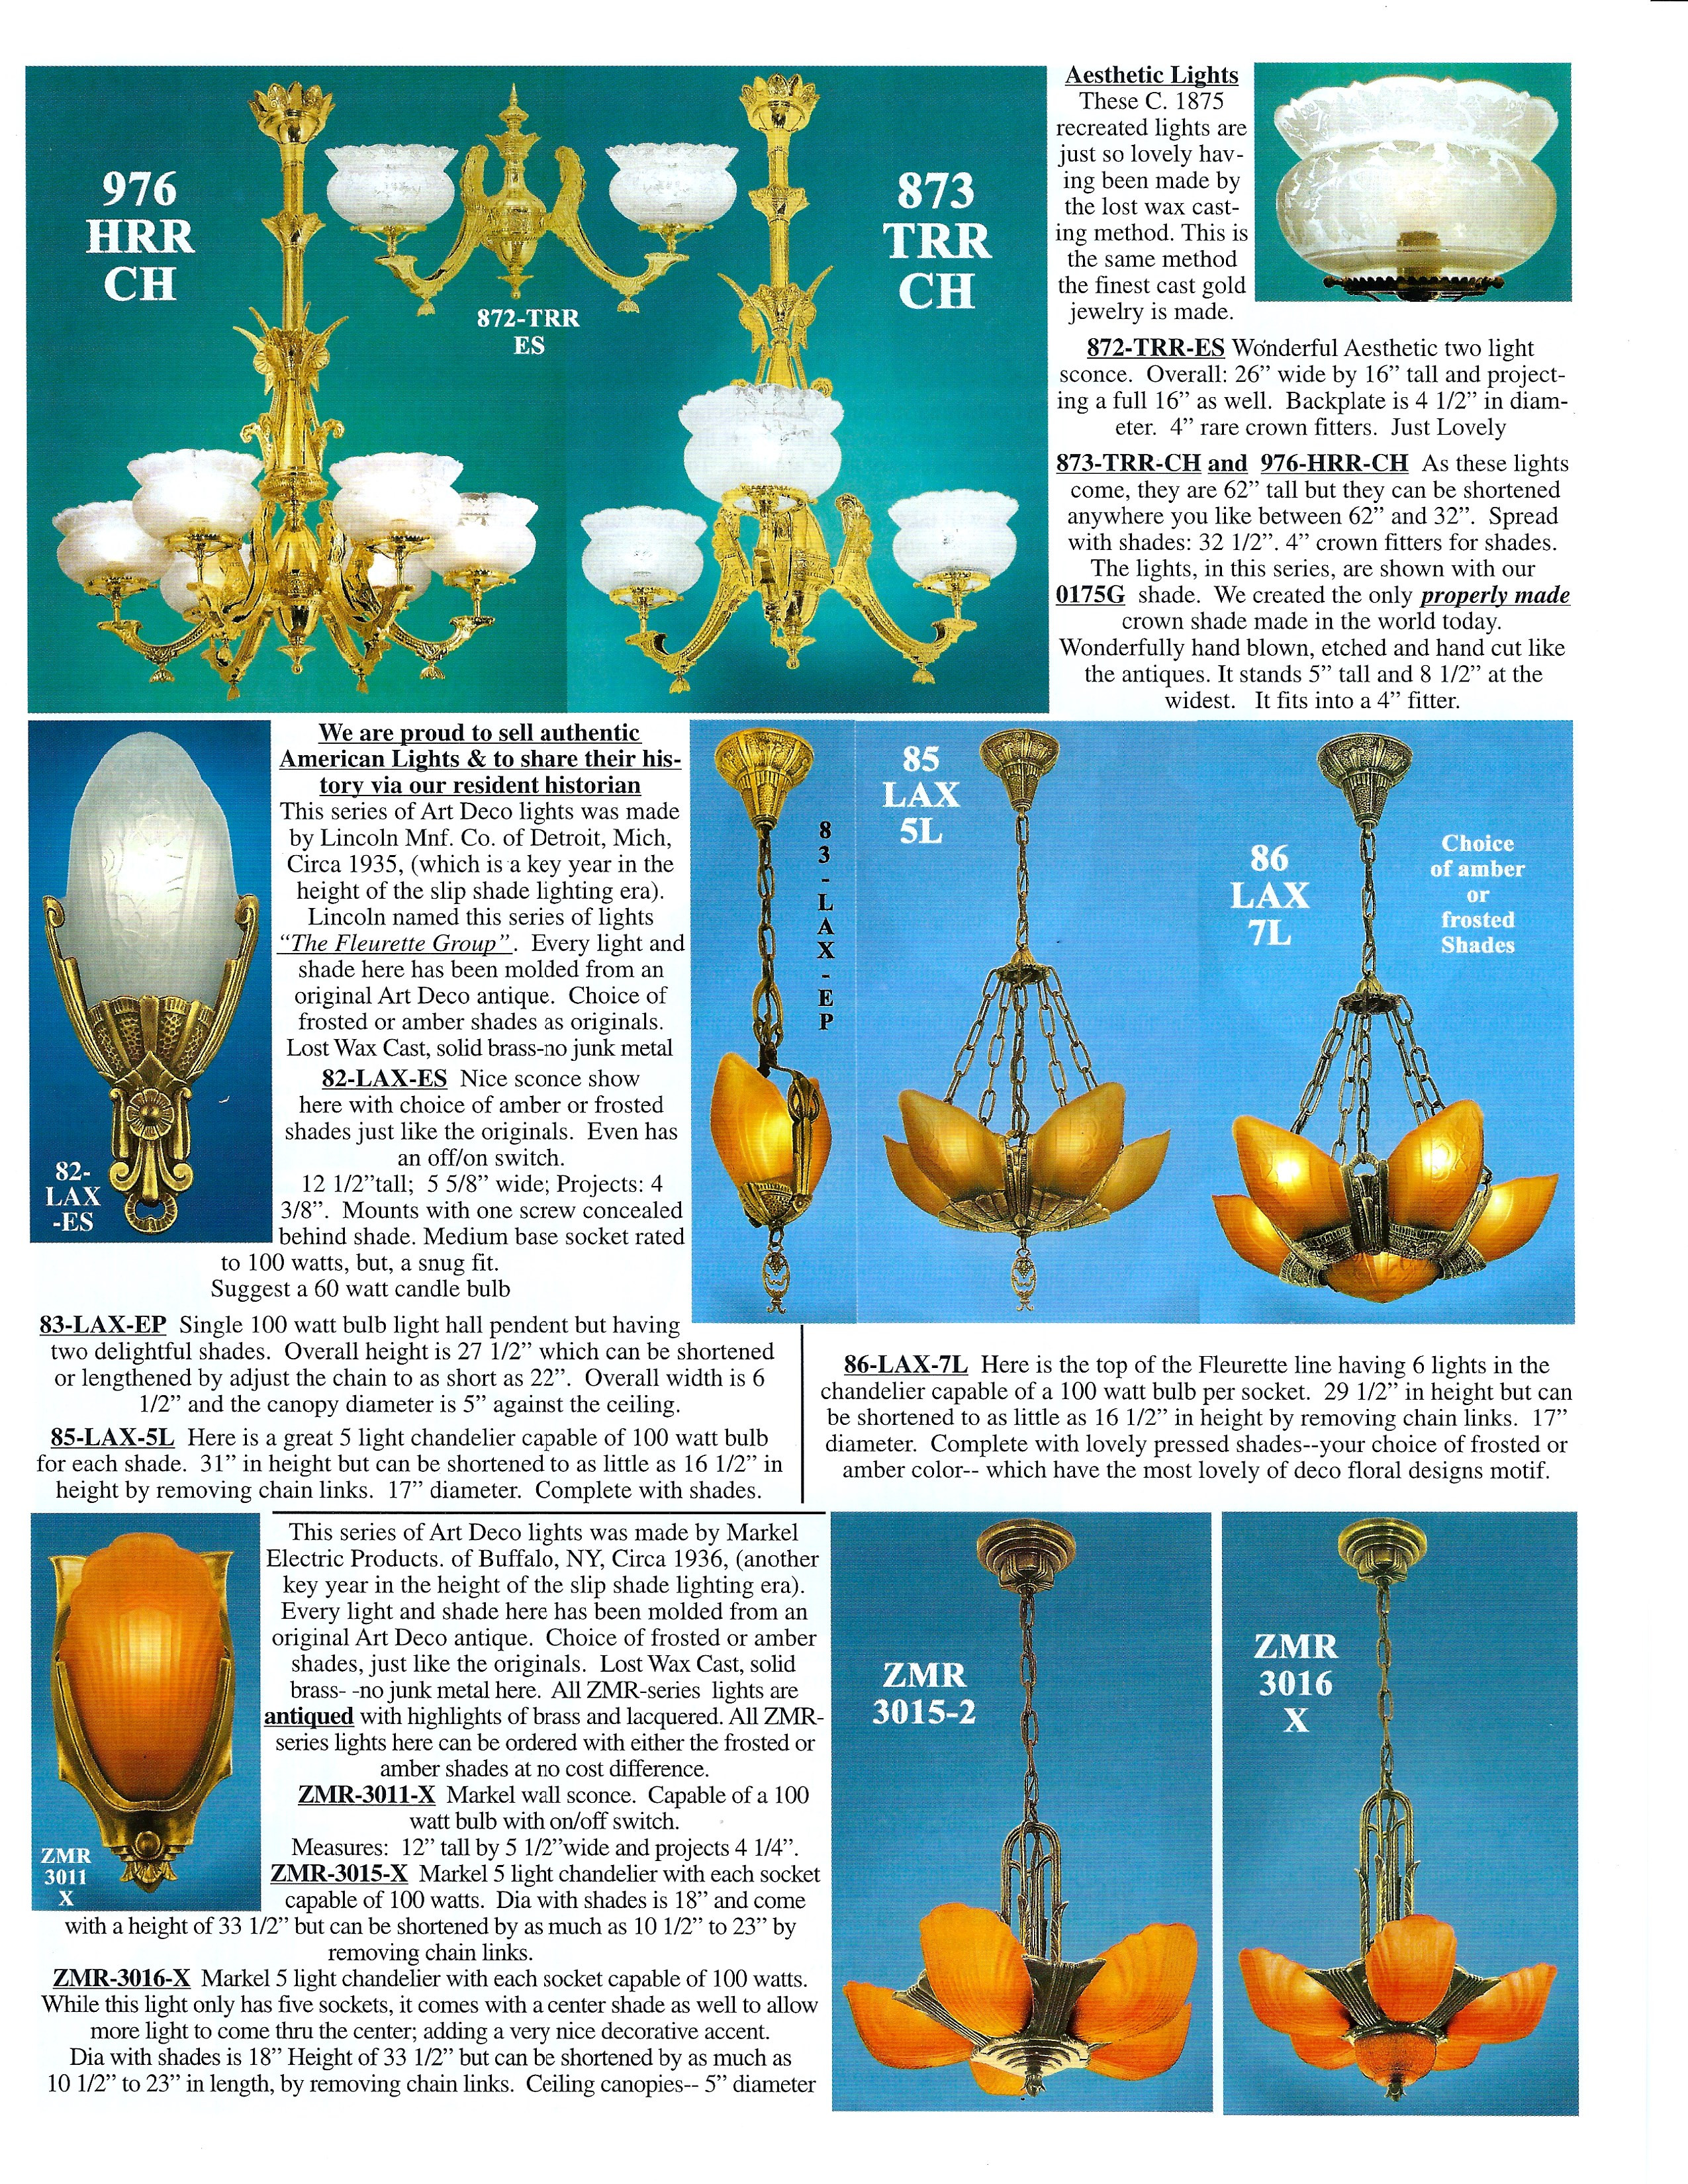 Catalog page 63